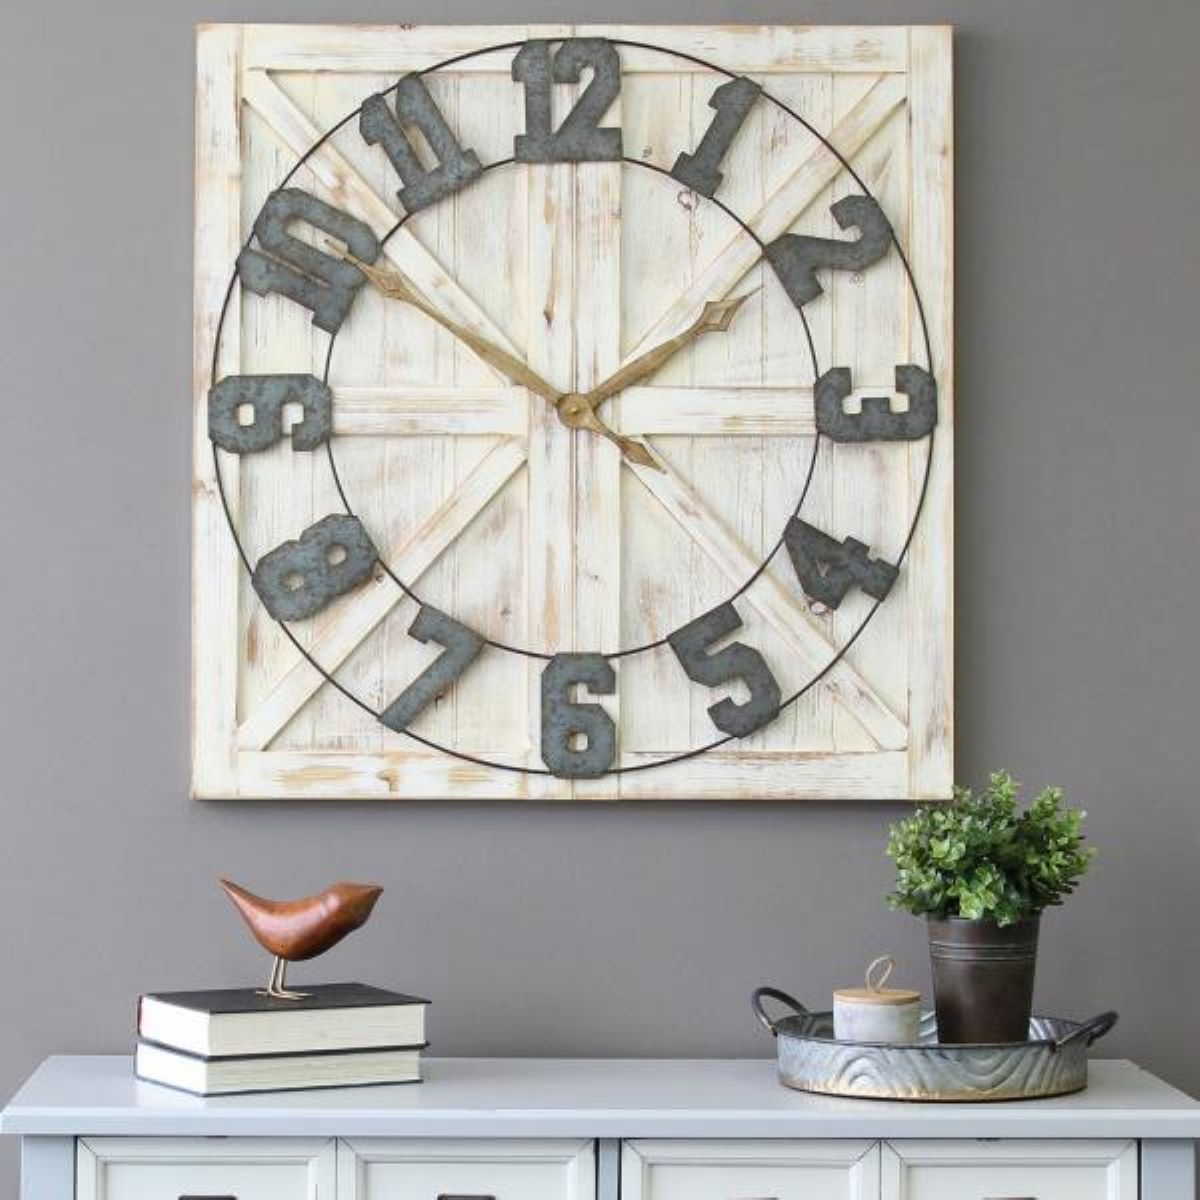 Square Distressed Wood and Metal Wall Clock with Vintage Touch